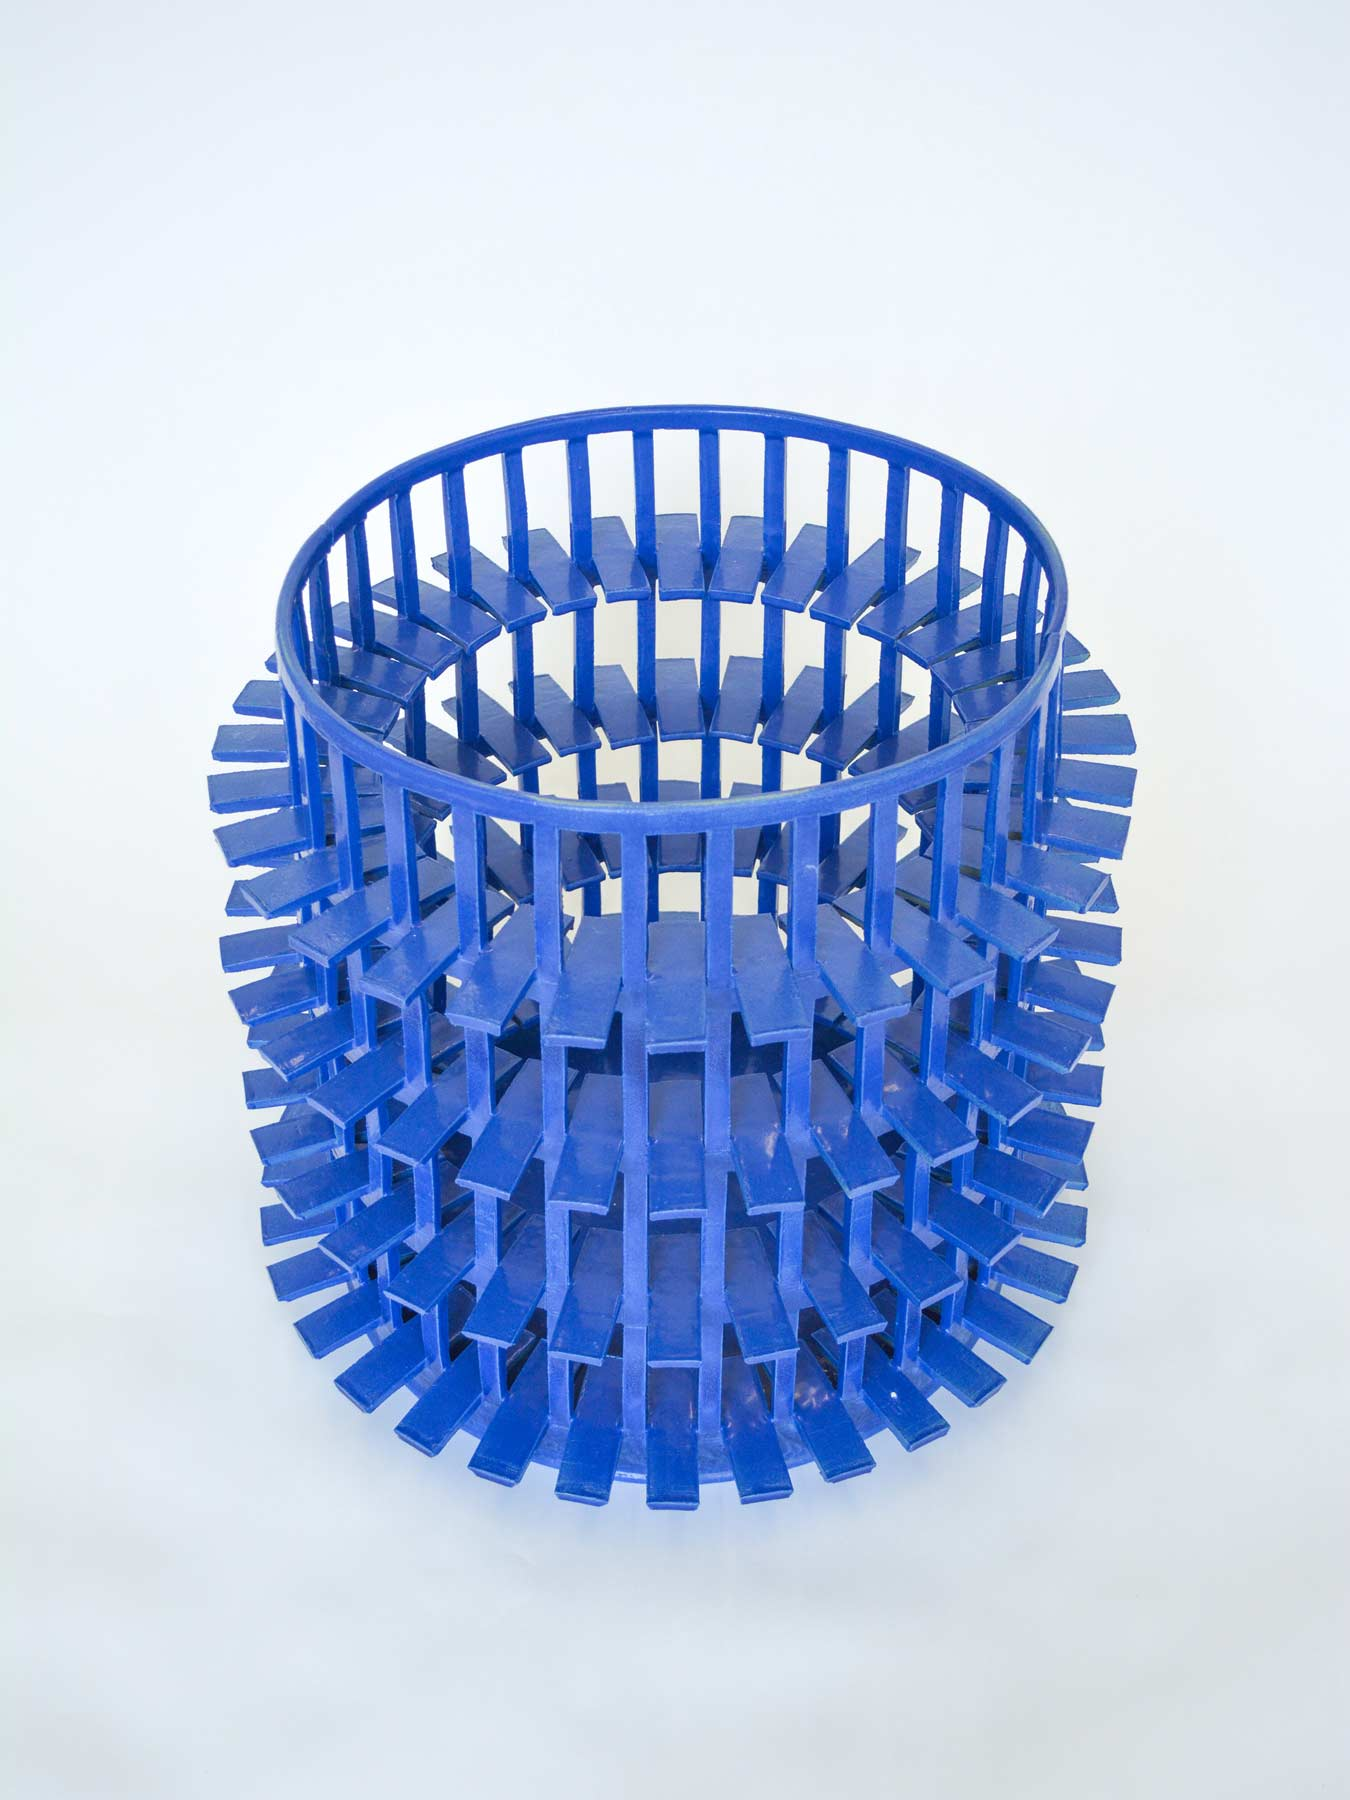 Large, wide blue stoneware vessel. Exterior is made up of a grid structure. Irregular white stones are inserted into the spaces formed by the grid.